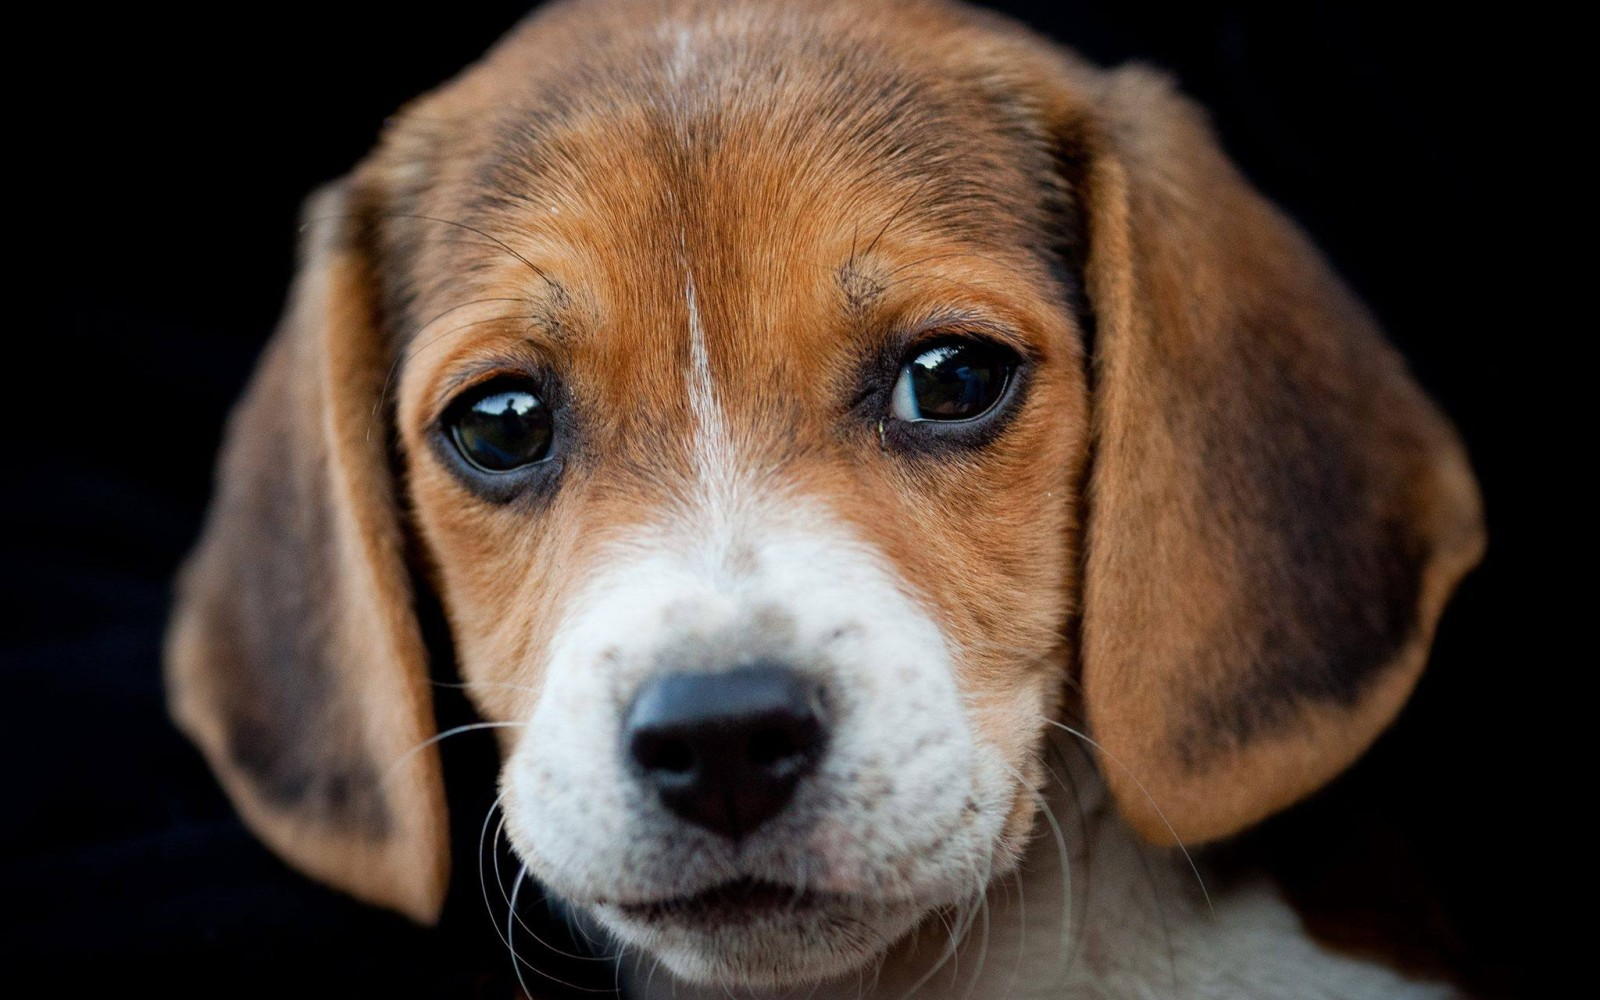 Why is the UK Government Still Approving Cruel Testing on Innocent Dogs?Compassion: Where the Interests of Animal Rights and Human Rights Meet